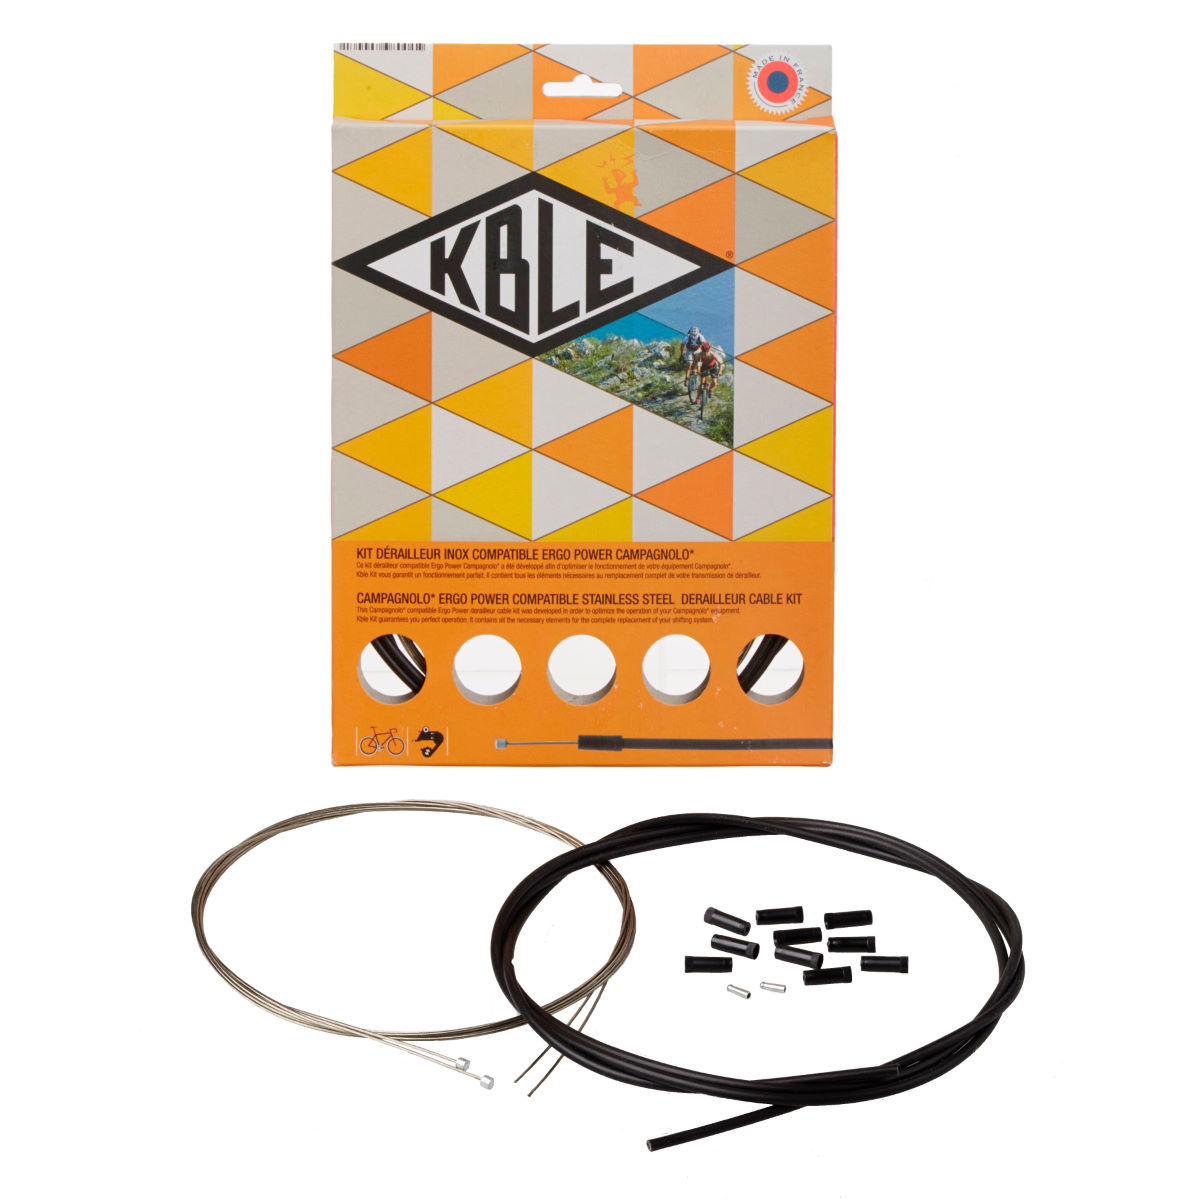 Transfil Transfil K.ble Campagnolo Gear Cable Set   Gear Cables